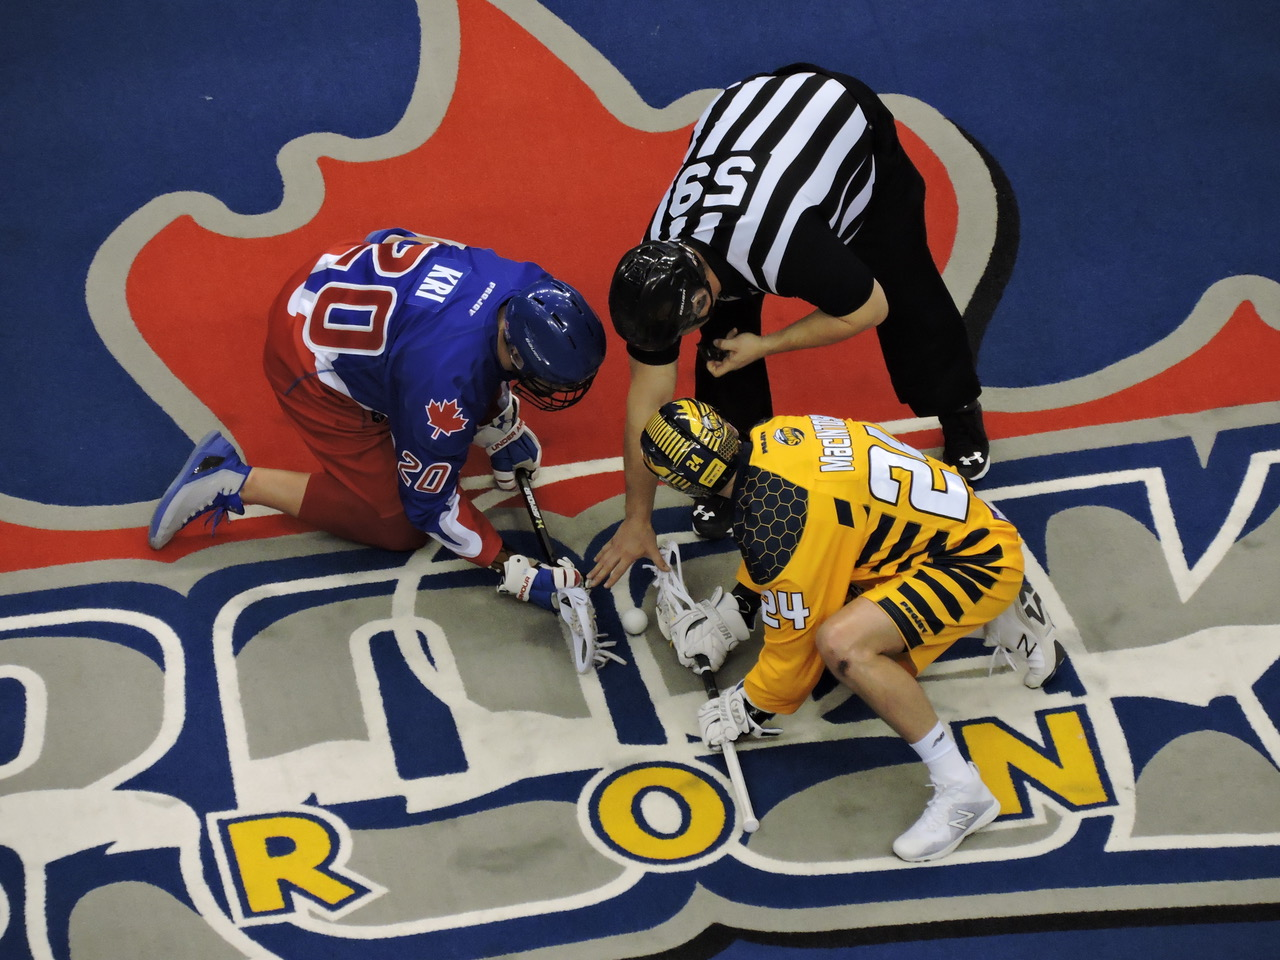 Bradley Kri and Jordan MacIntosh face-off as the Toronto Rock host the Georgia Swarm on February 17, 2017. (Photo credit: Anna Taylor)